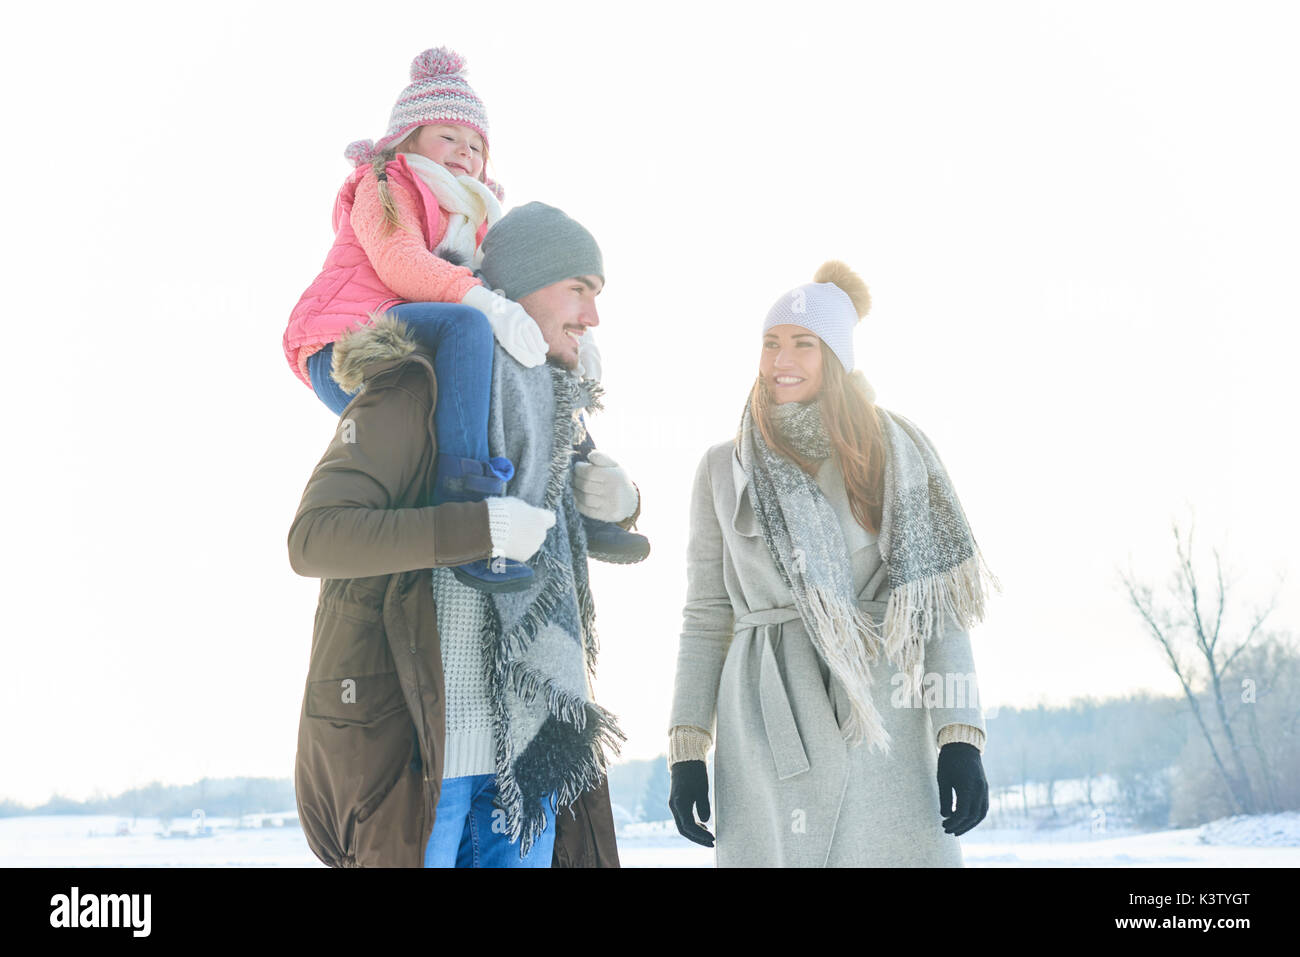 Family on their winter vacation walking in the snow in the nature - Stock Image